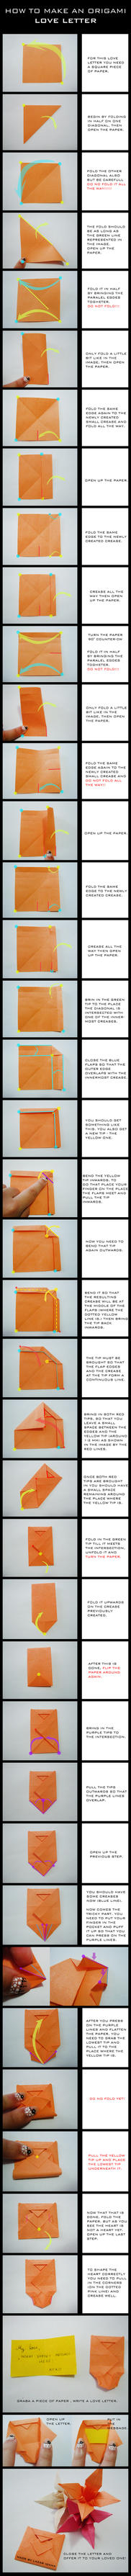 TUTORIAL: Origami Love Letter by DarkUmah